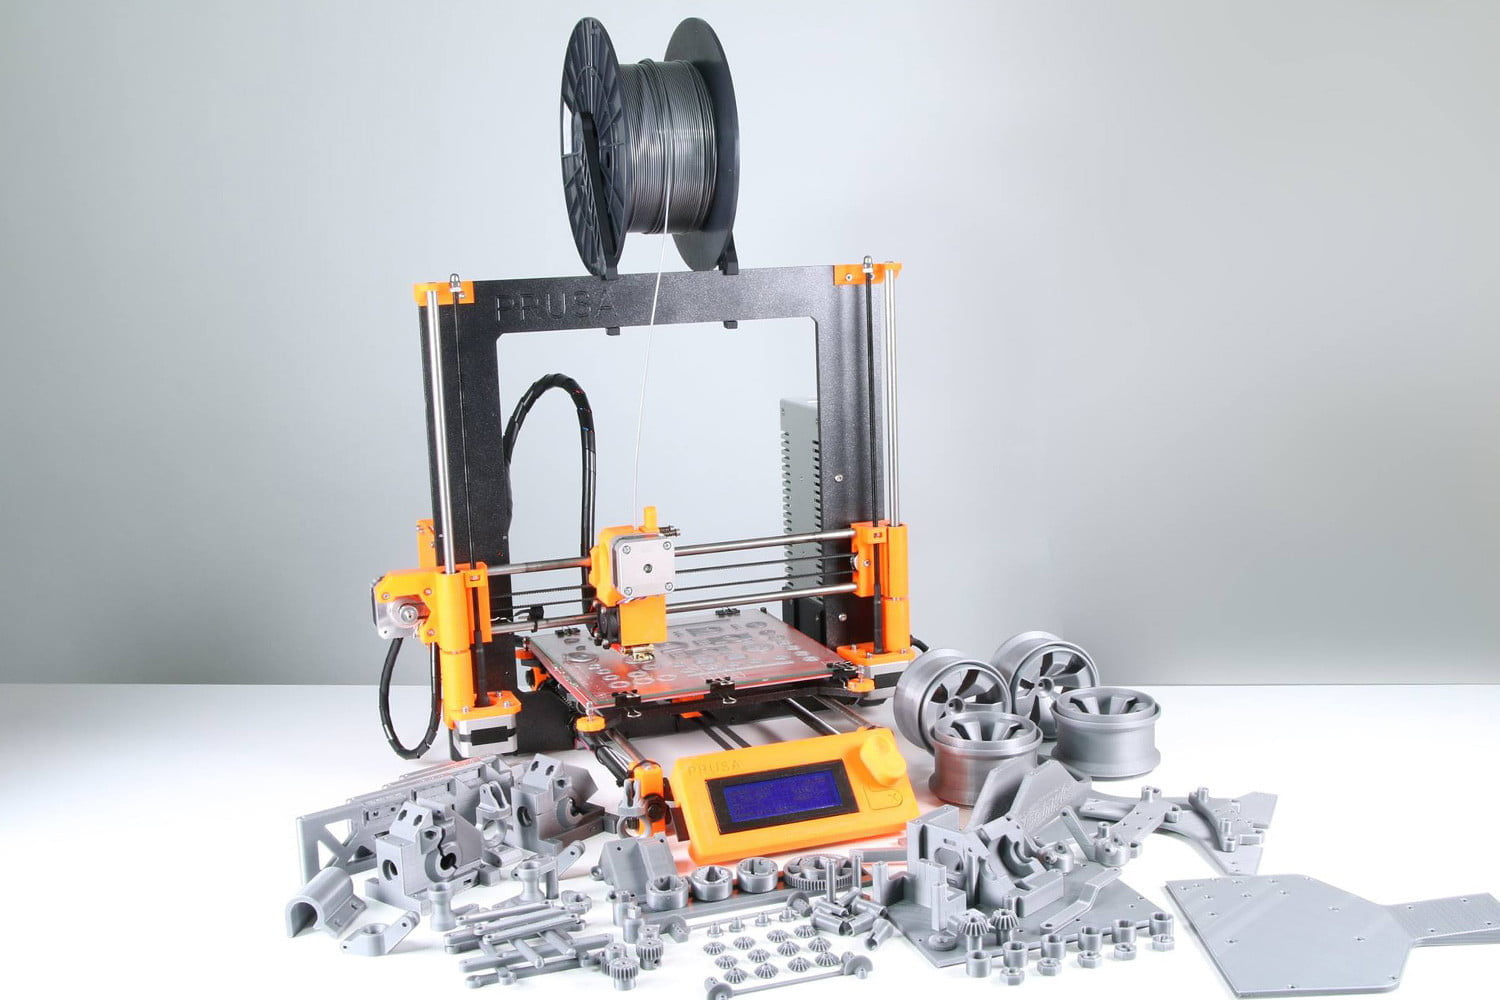 Home 3d printer projects for high school.